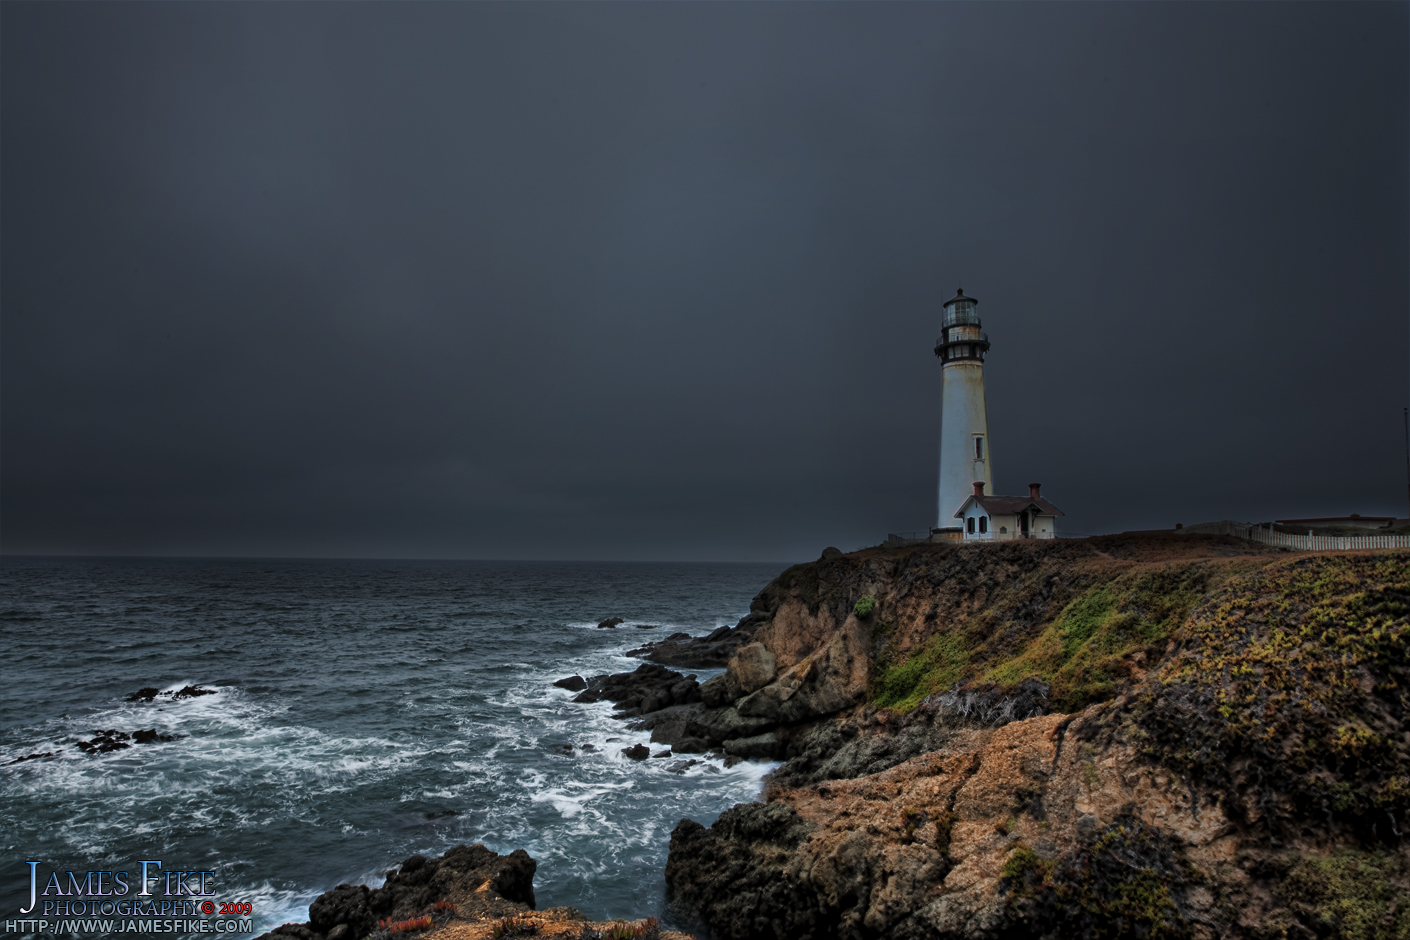 A storm descends, representing troubled times for the Pigeon Point Lighthouse.